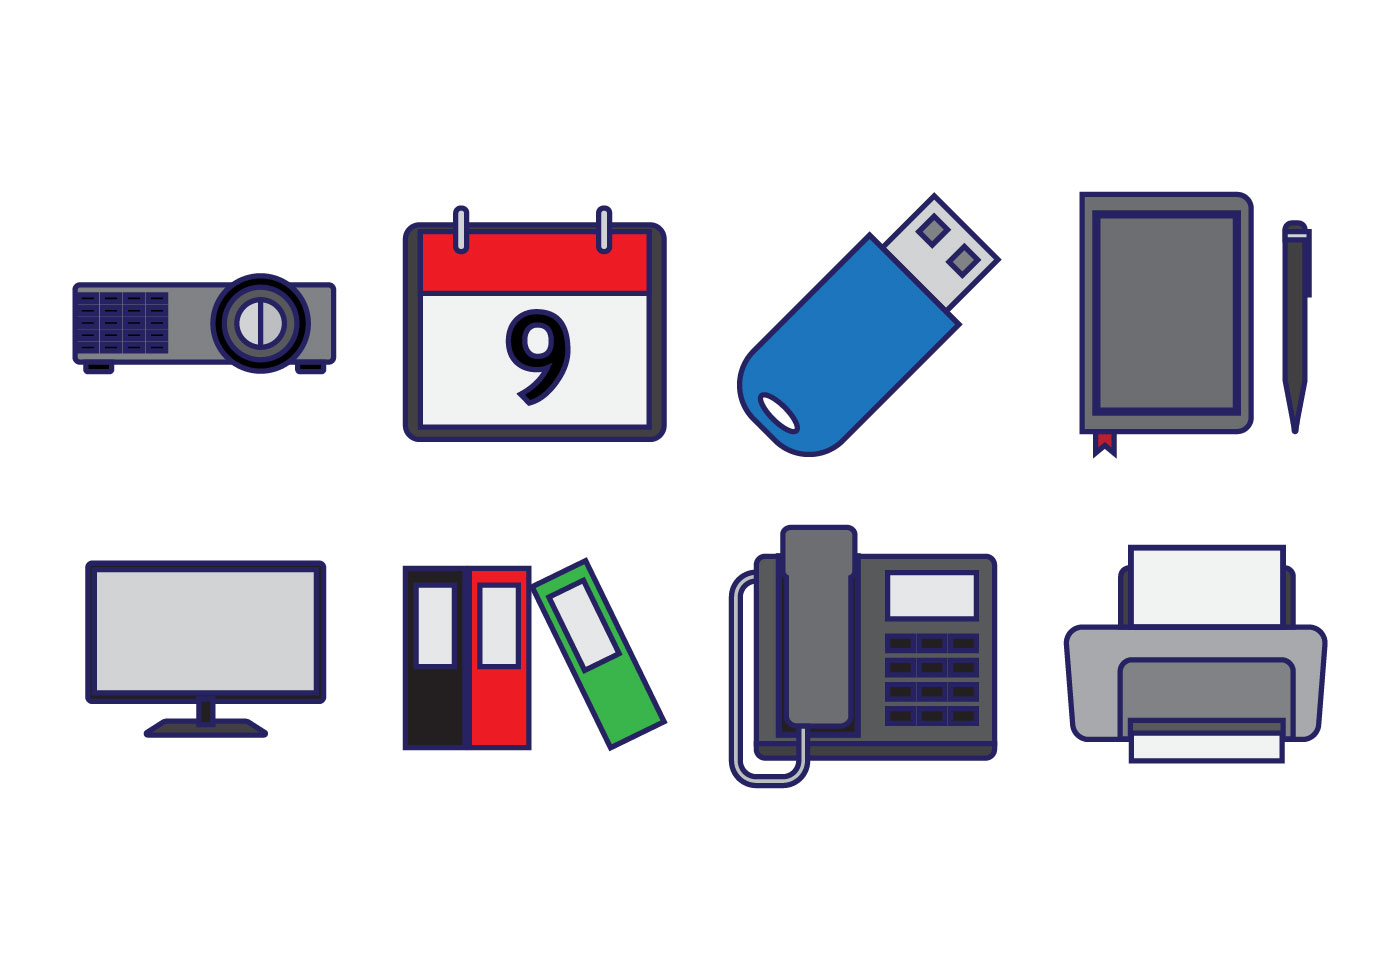 Free office element icon vector download free vector art for Bankia oficina internet login